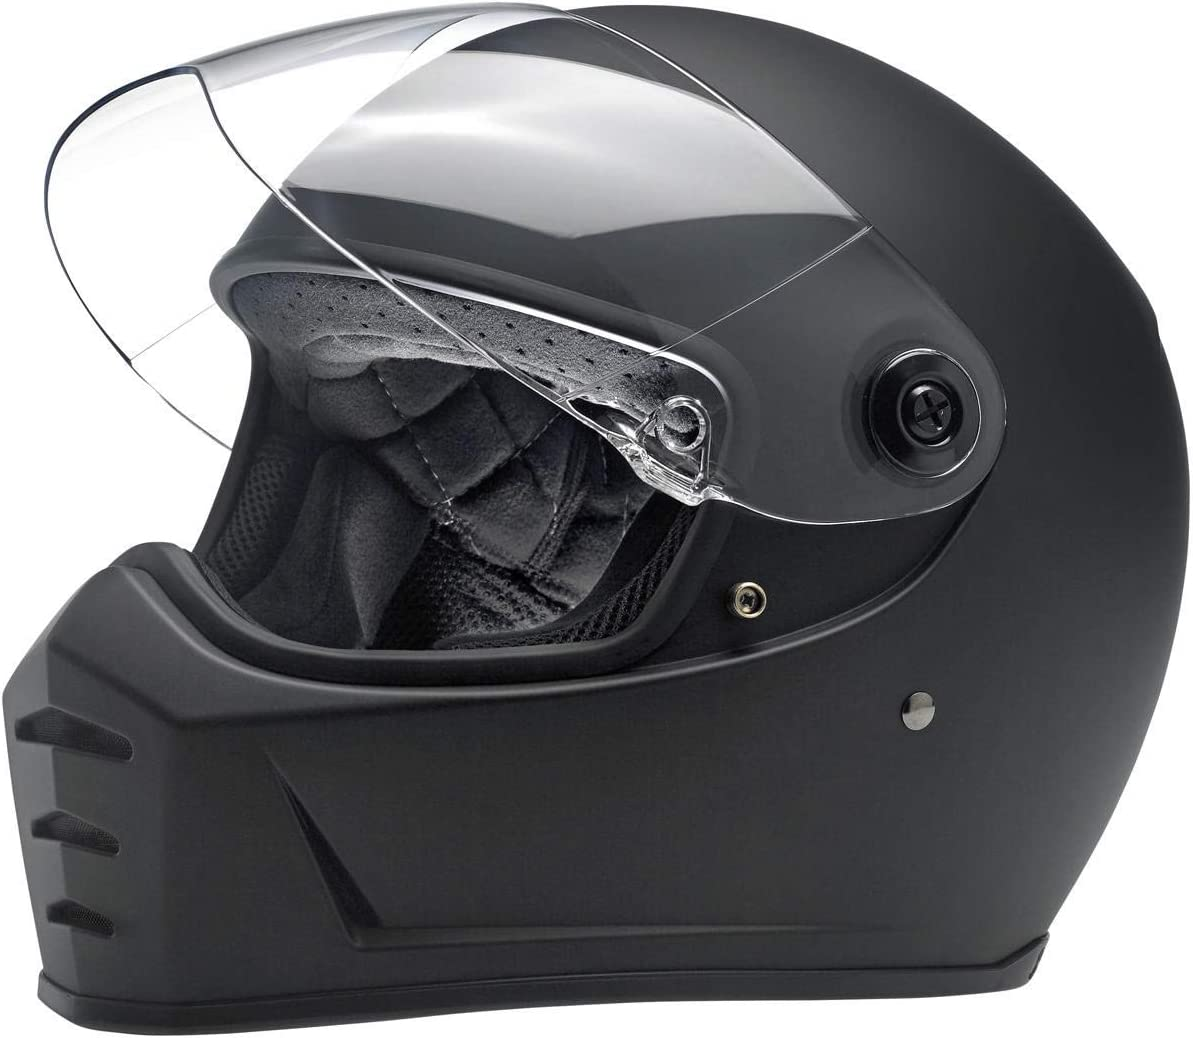 Biltwell Unisex-Adult Full face Lane Splitter Helmet (Flat Black, Large)